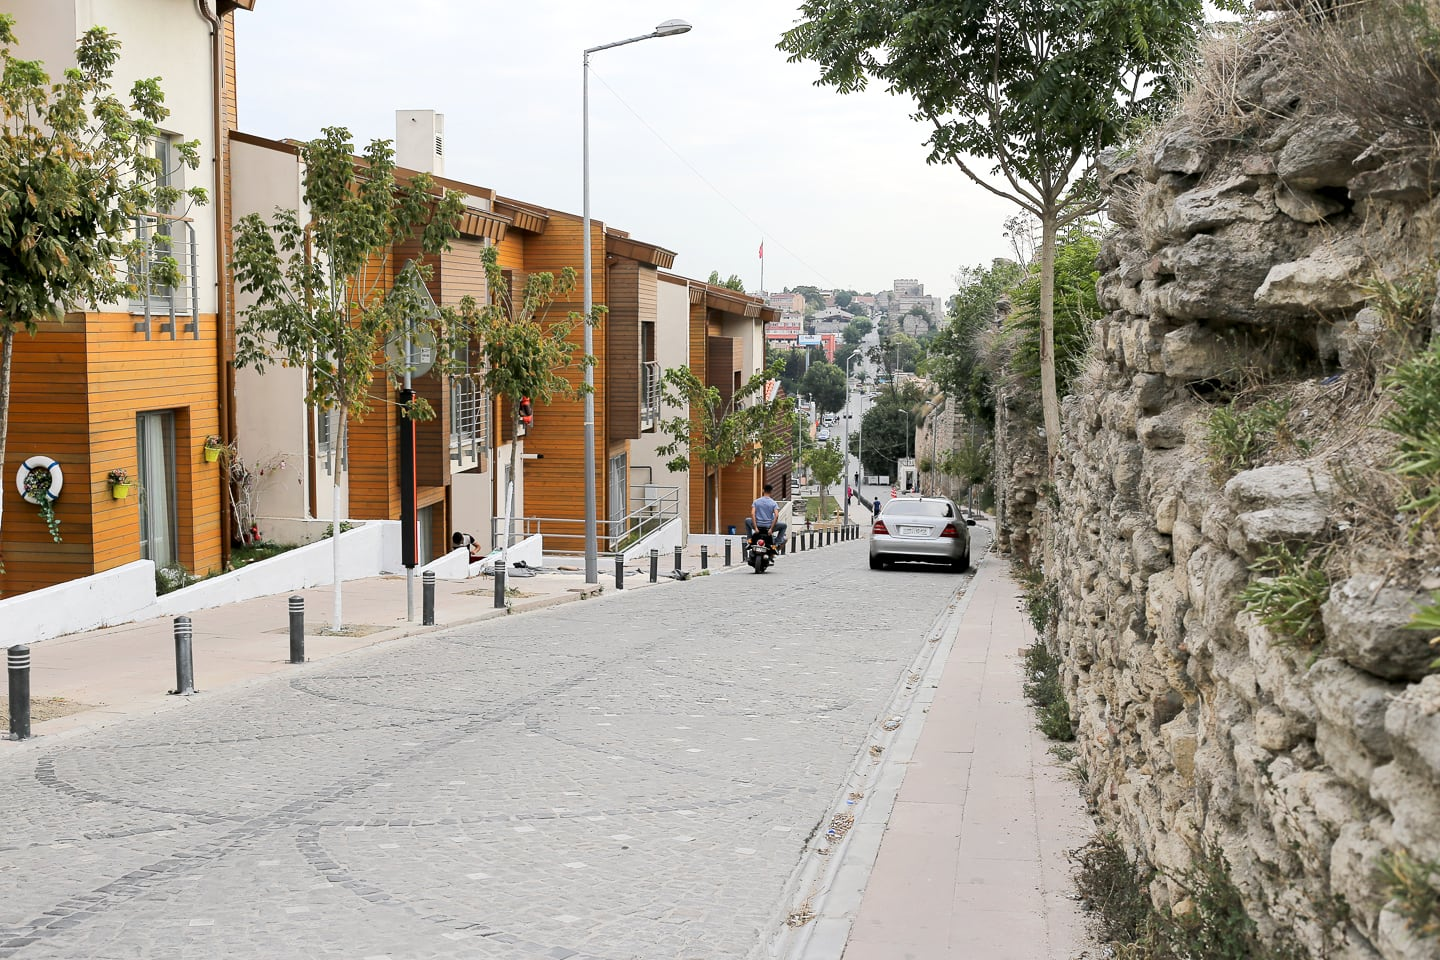 newly constructed homes face the Theodosian Walls